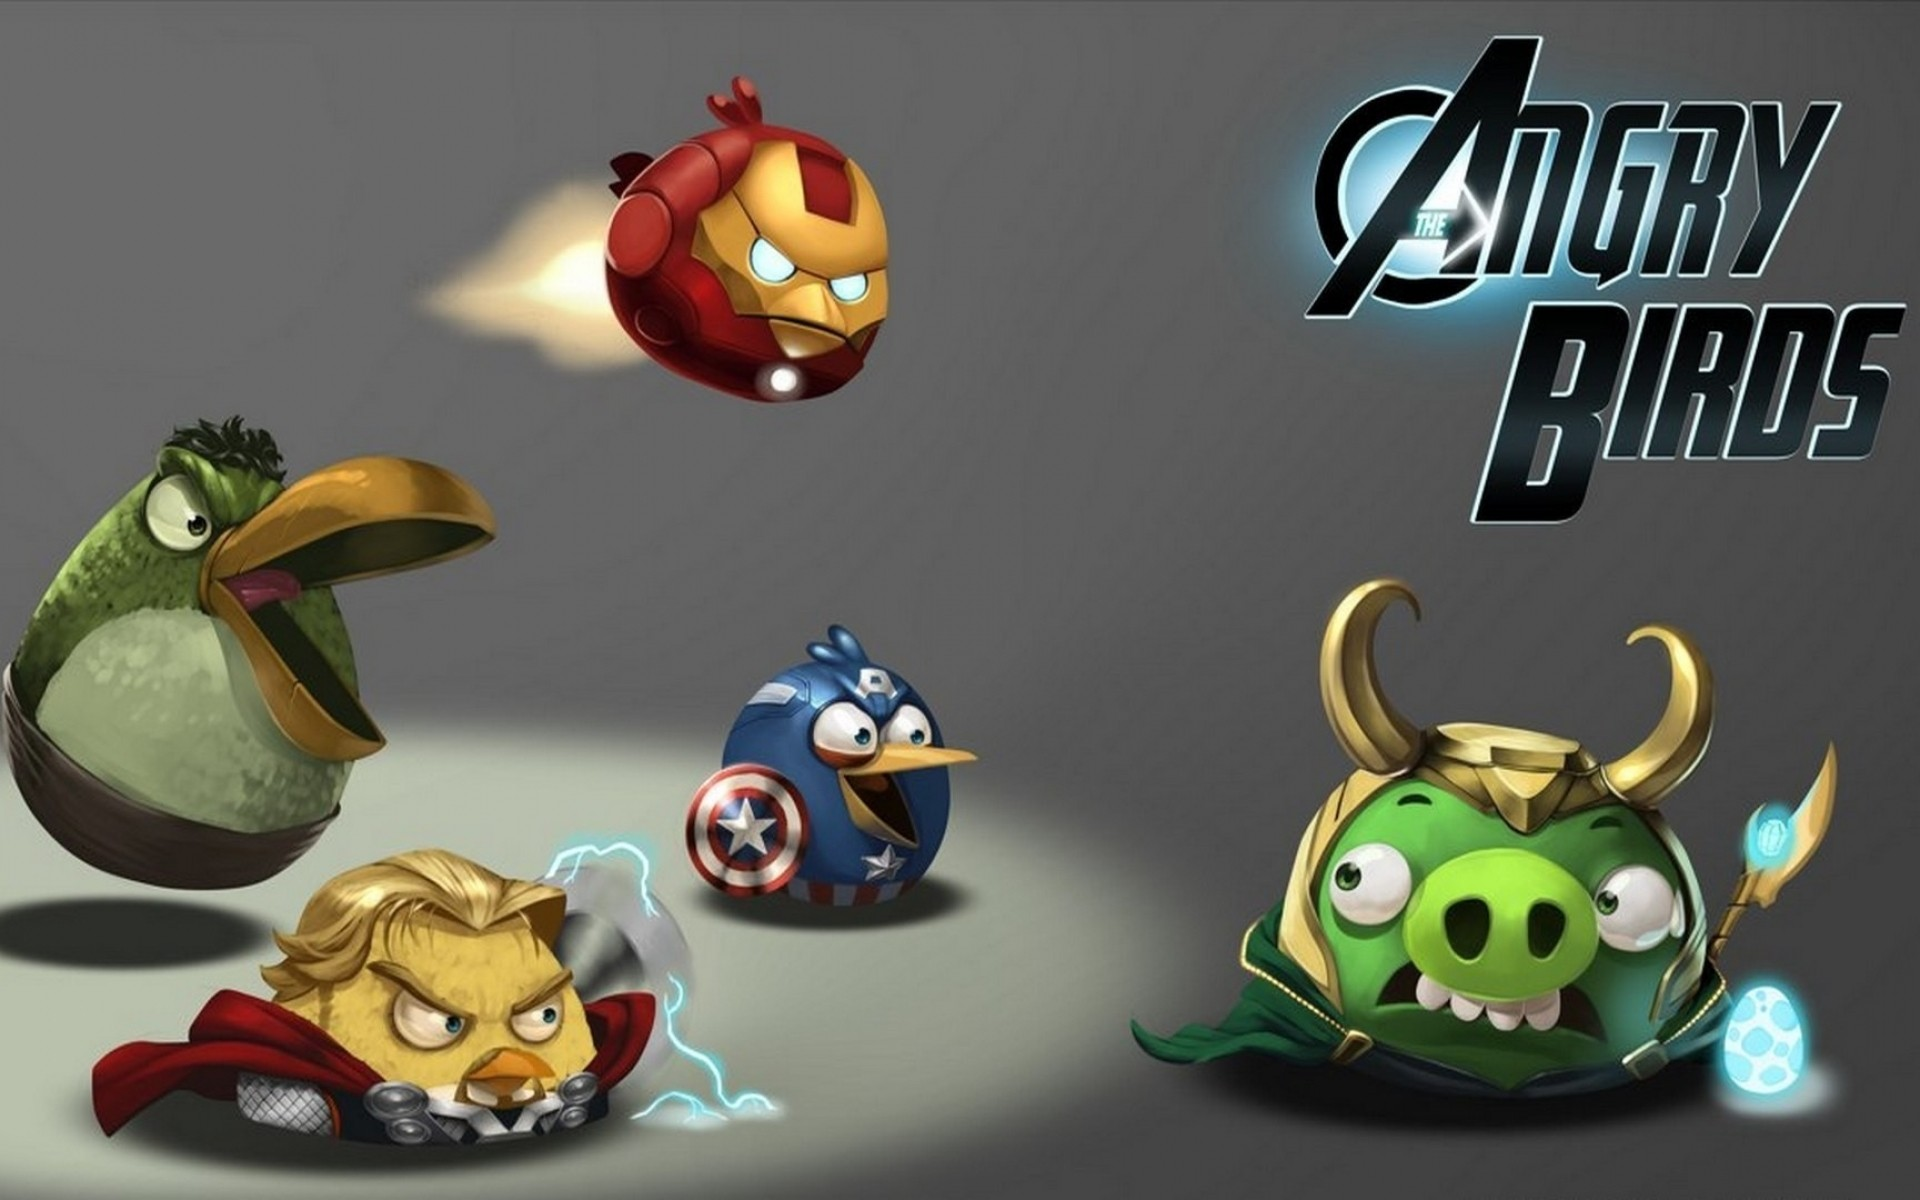 space angry birds hd wallpapers fullscreen best images for mobile